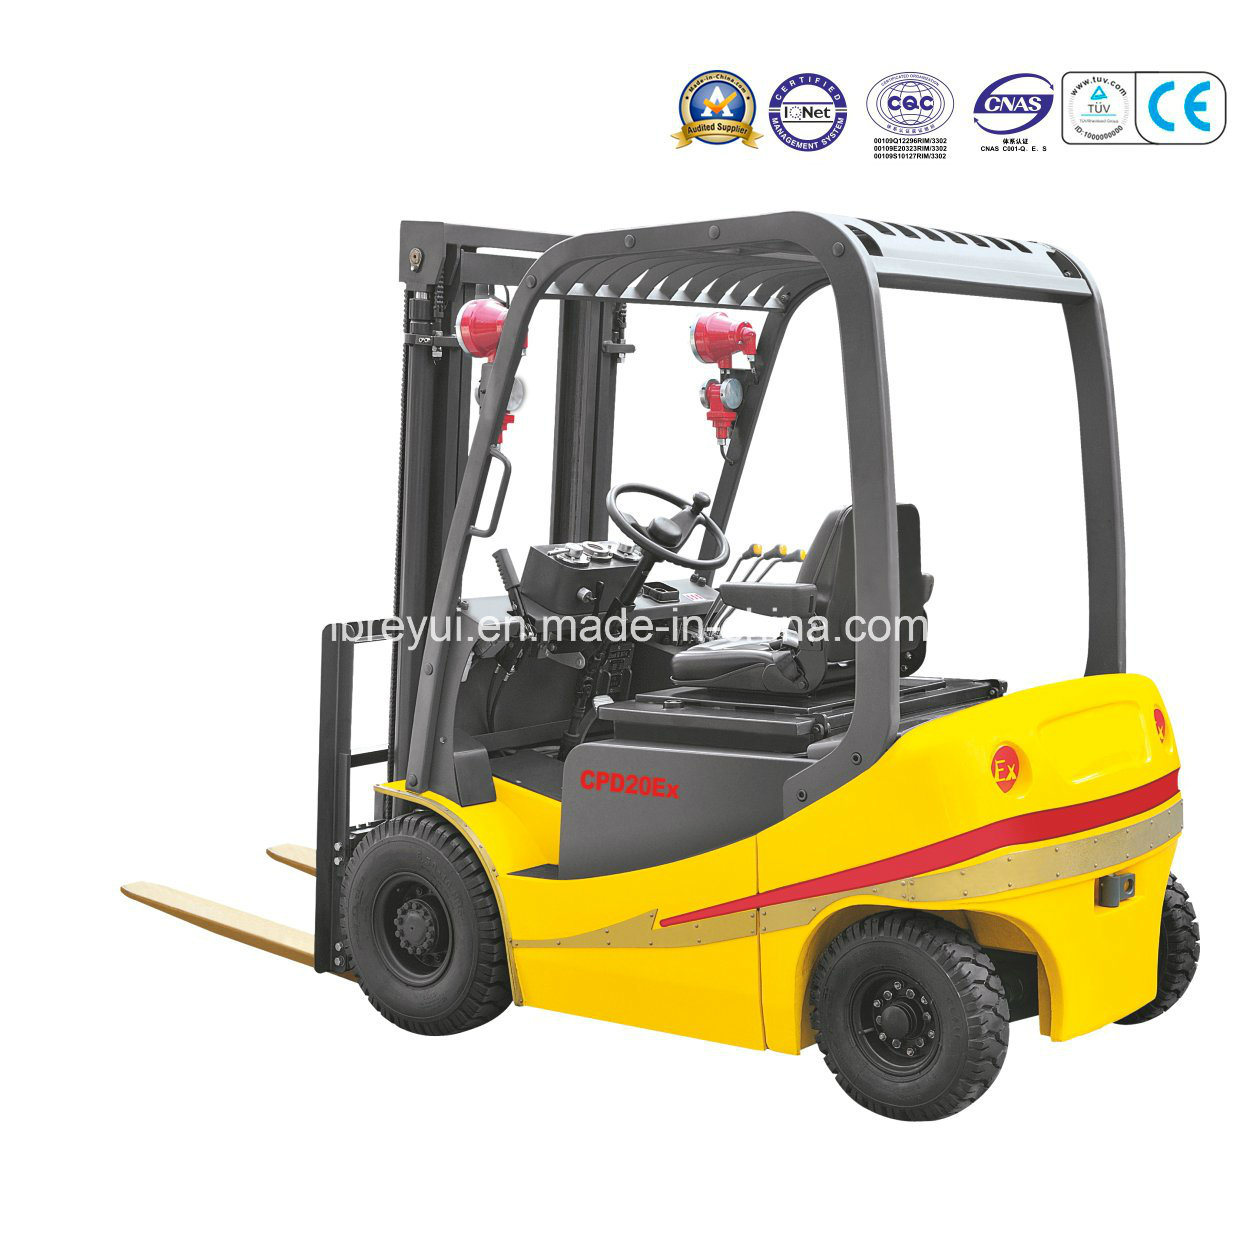 Explosion-Proof Electric Forklift Truck